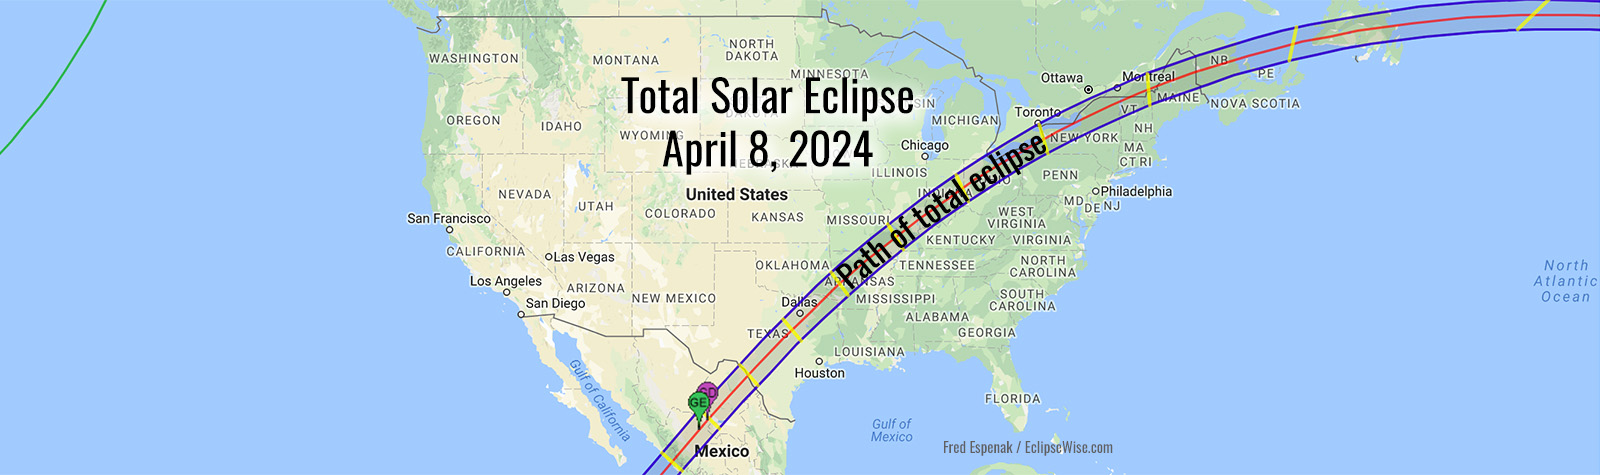 Map of 2024 Total Solar Eclipse